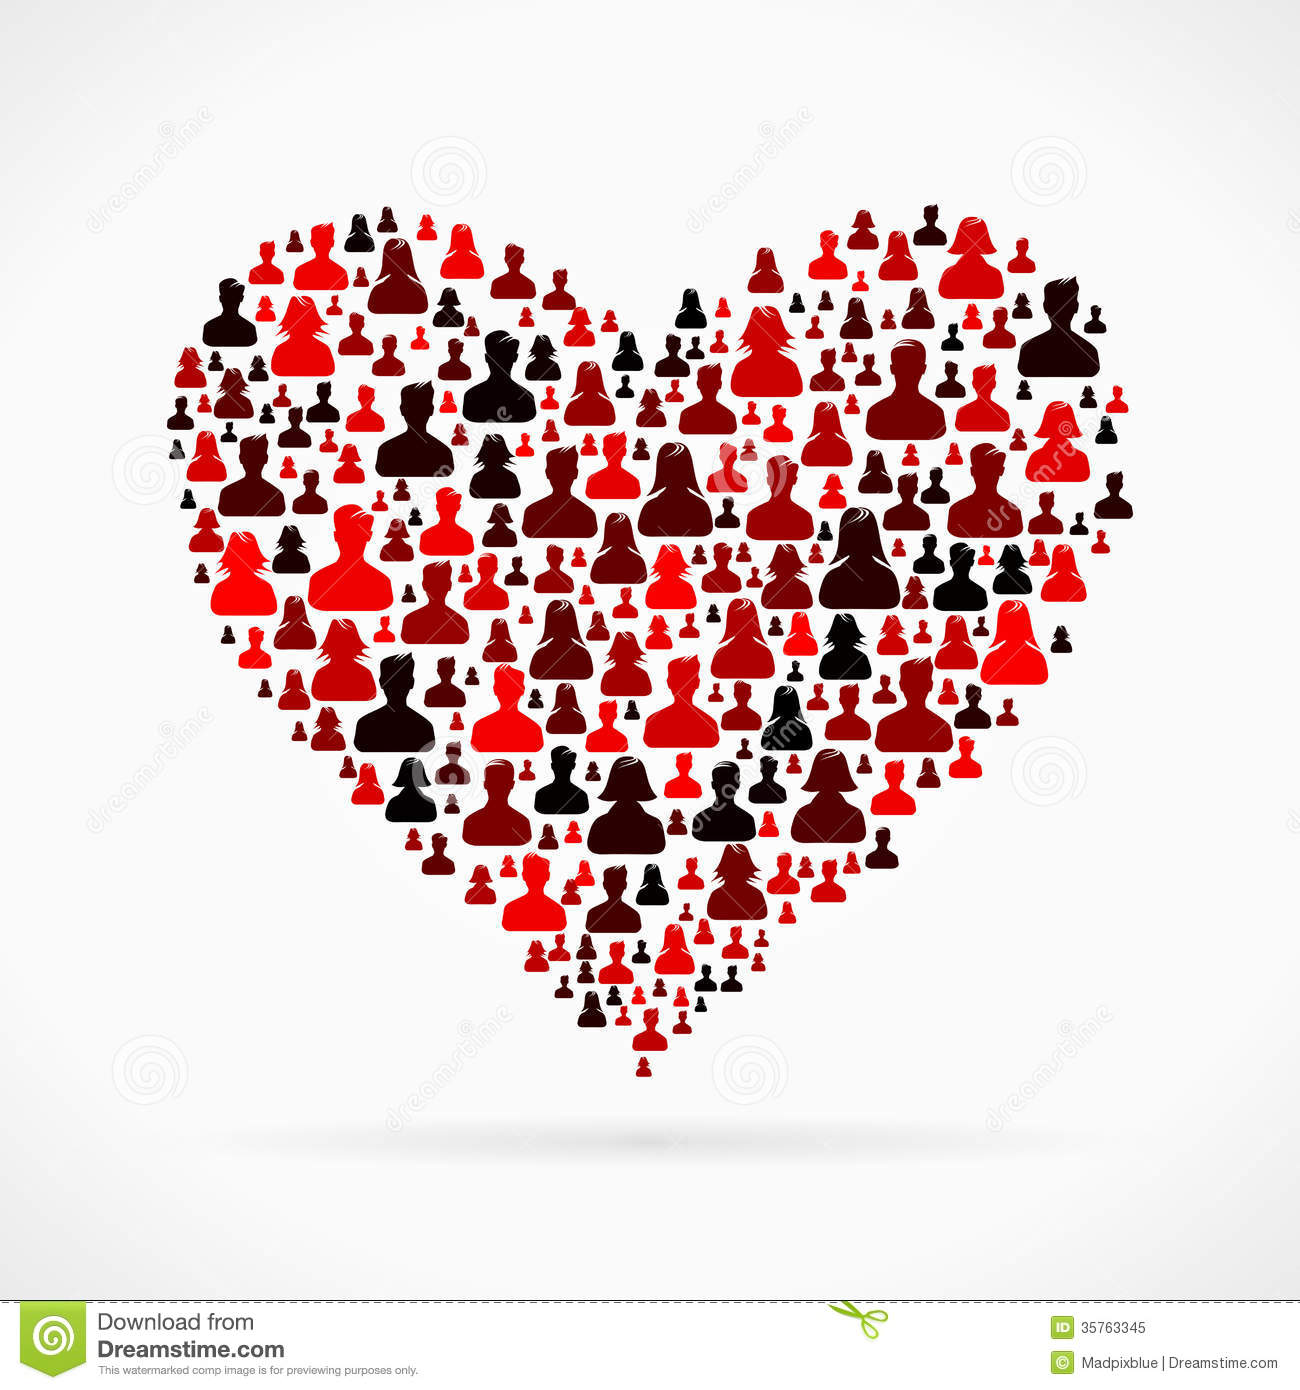 Heart made out of large group of people silhouettes.